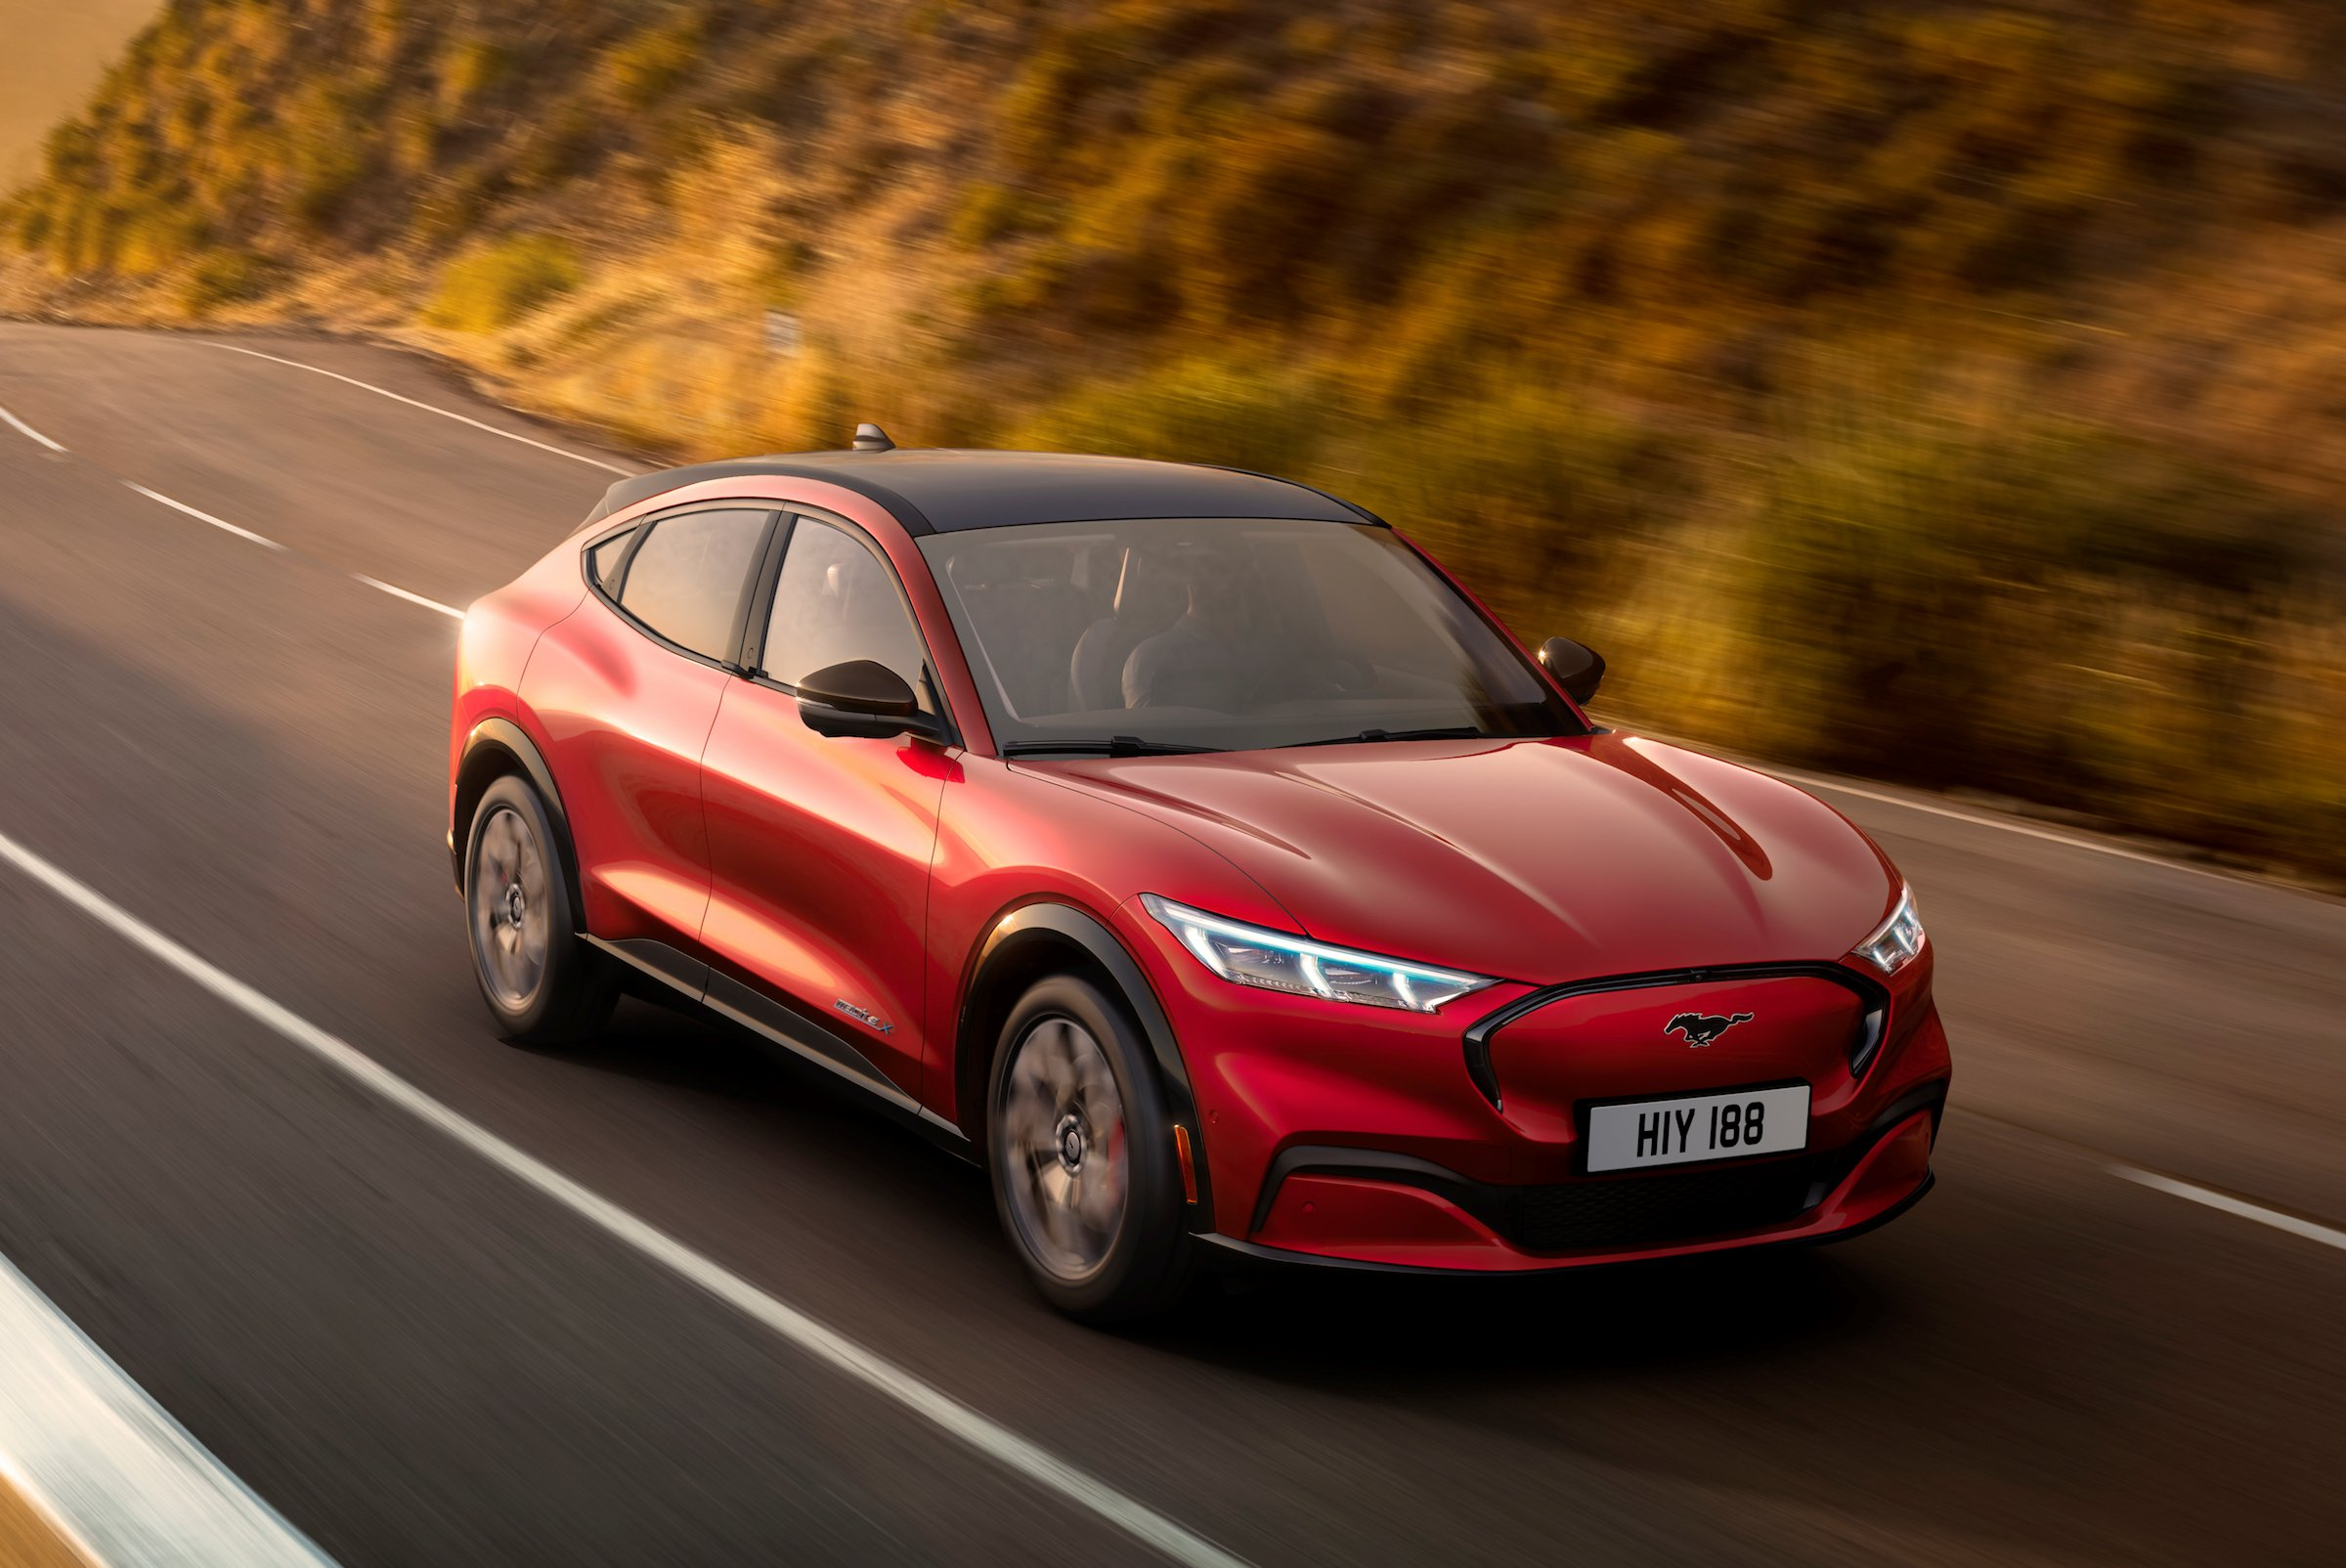 Video: Ford Reveals Why It Called The Mach-E SUV A Mustang